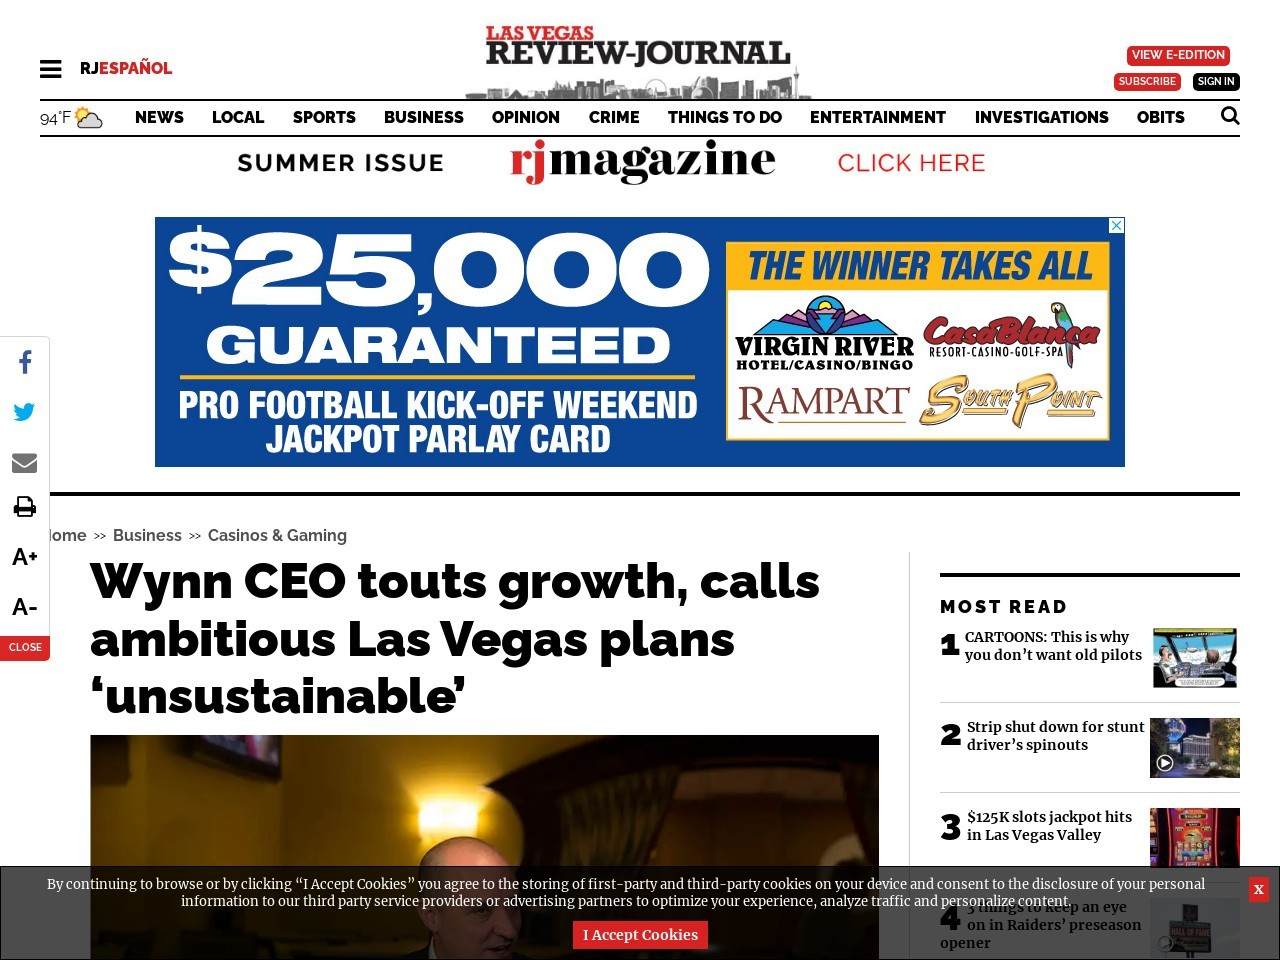 Wynn CEO touts growth, calls ambitious Las Vegas plans 'unsustainable'